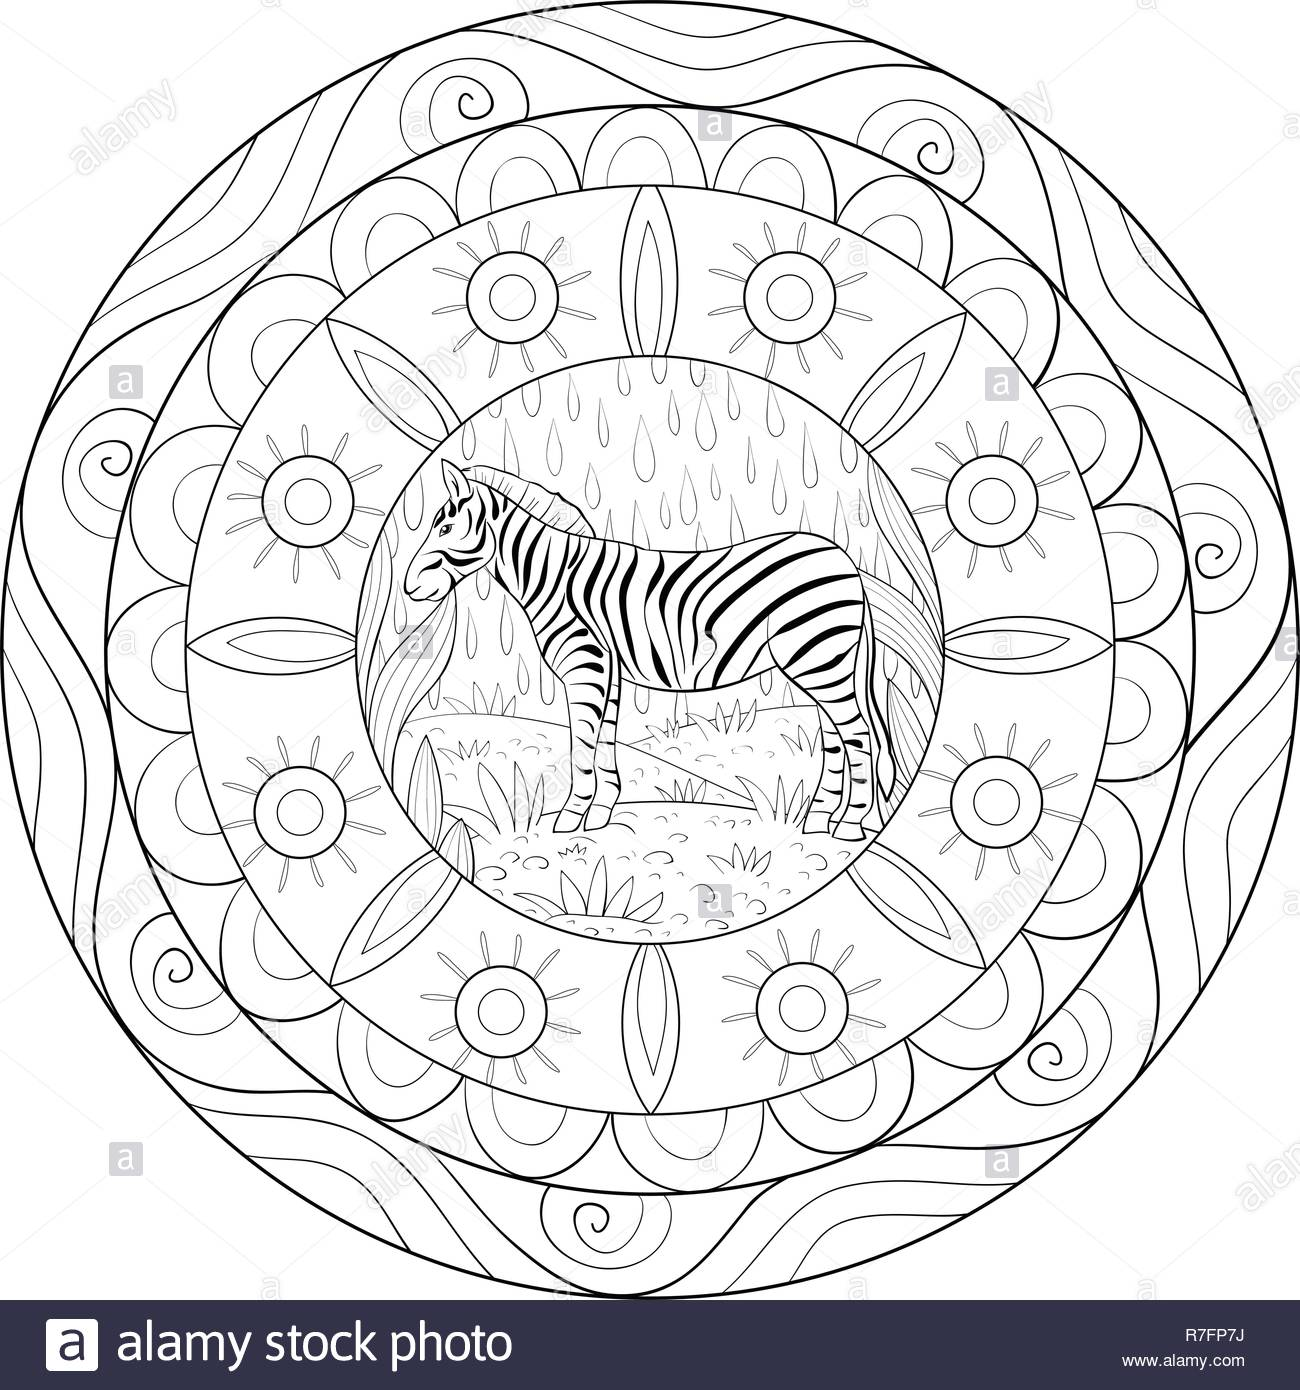 A zen mandala with a zebra image for adults.A coloring book,page for ...